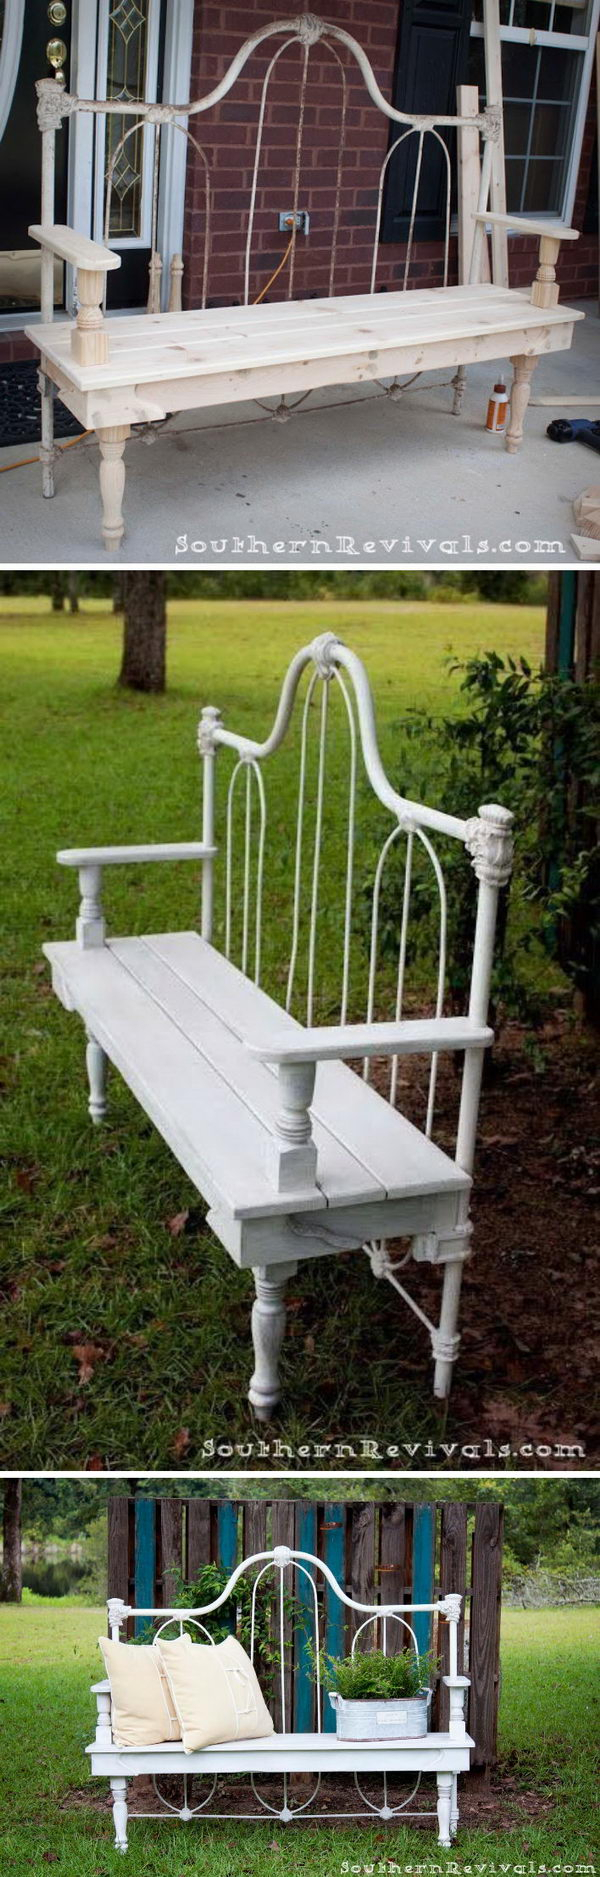 40 Creative Outdoor Bench Diy Ideas And Tutorials 2017 For Tree Of Life Iron Garden Benches (View 20 of 25)